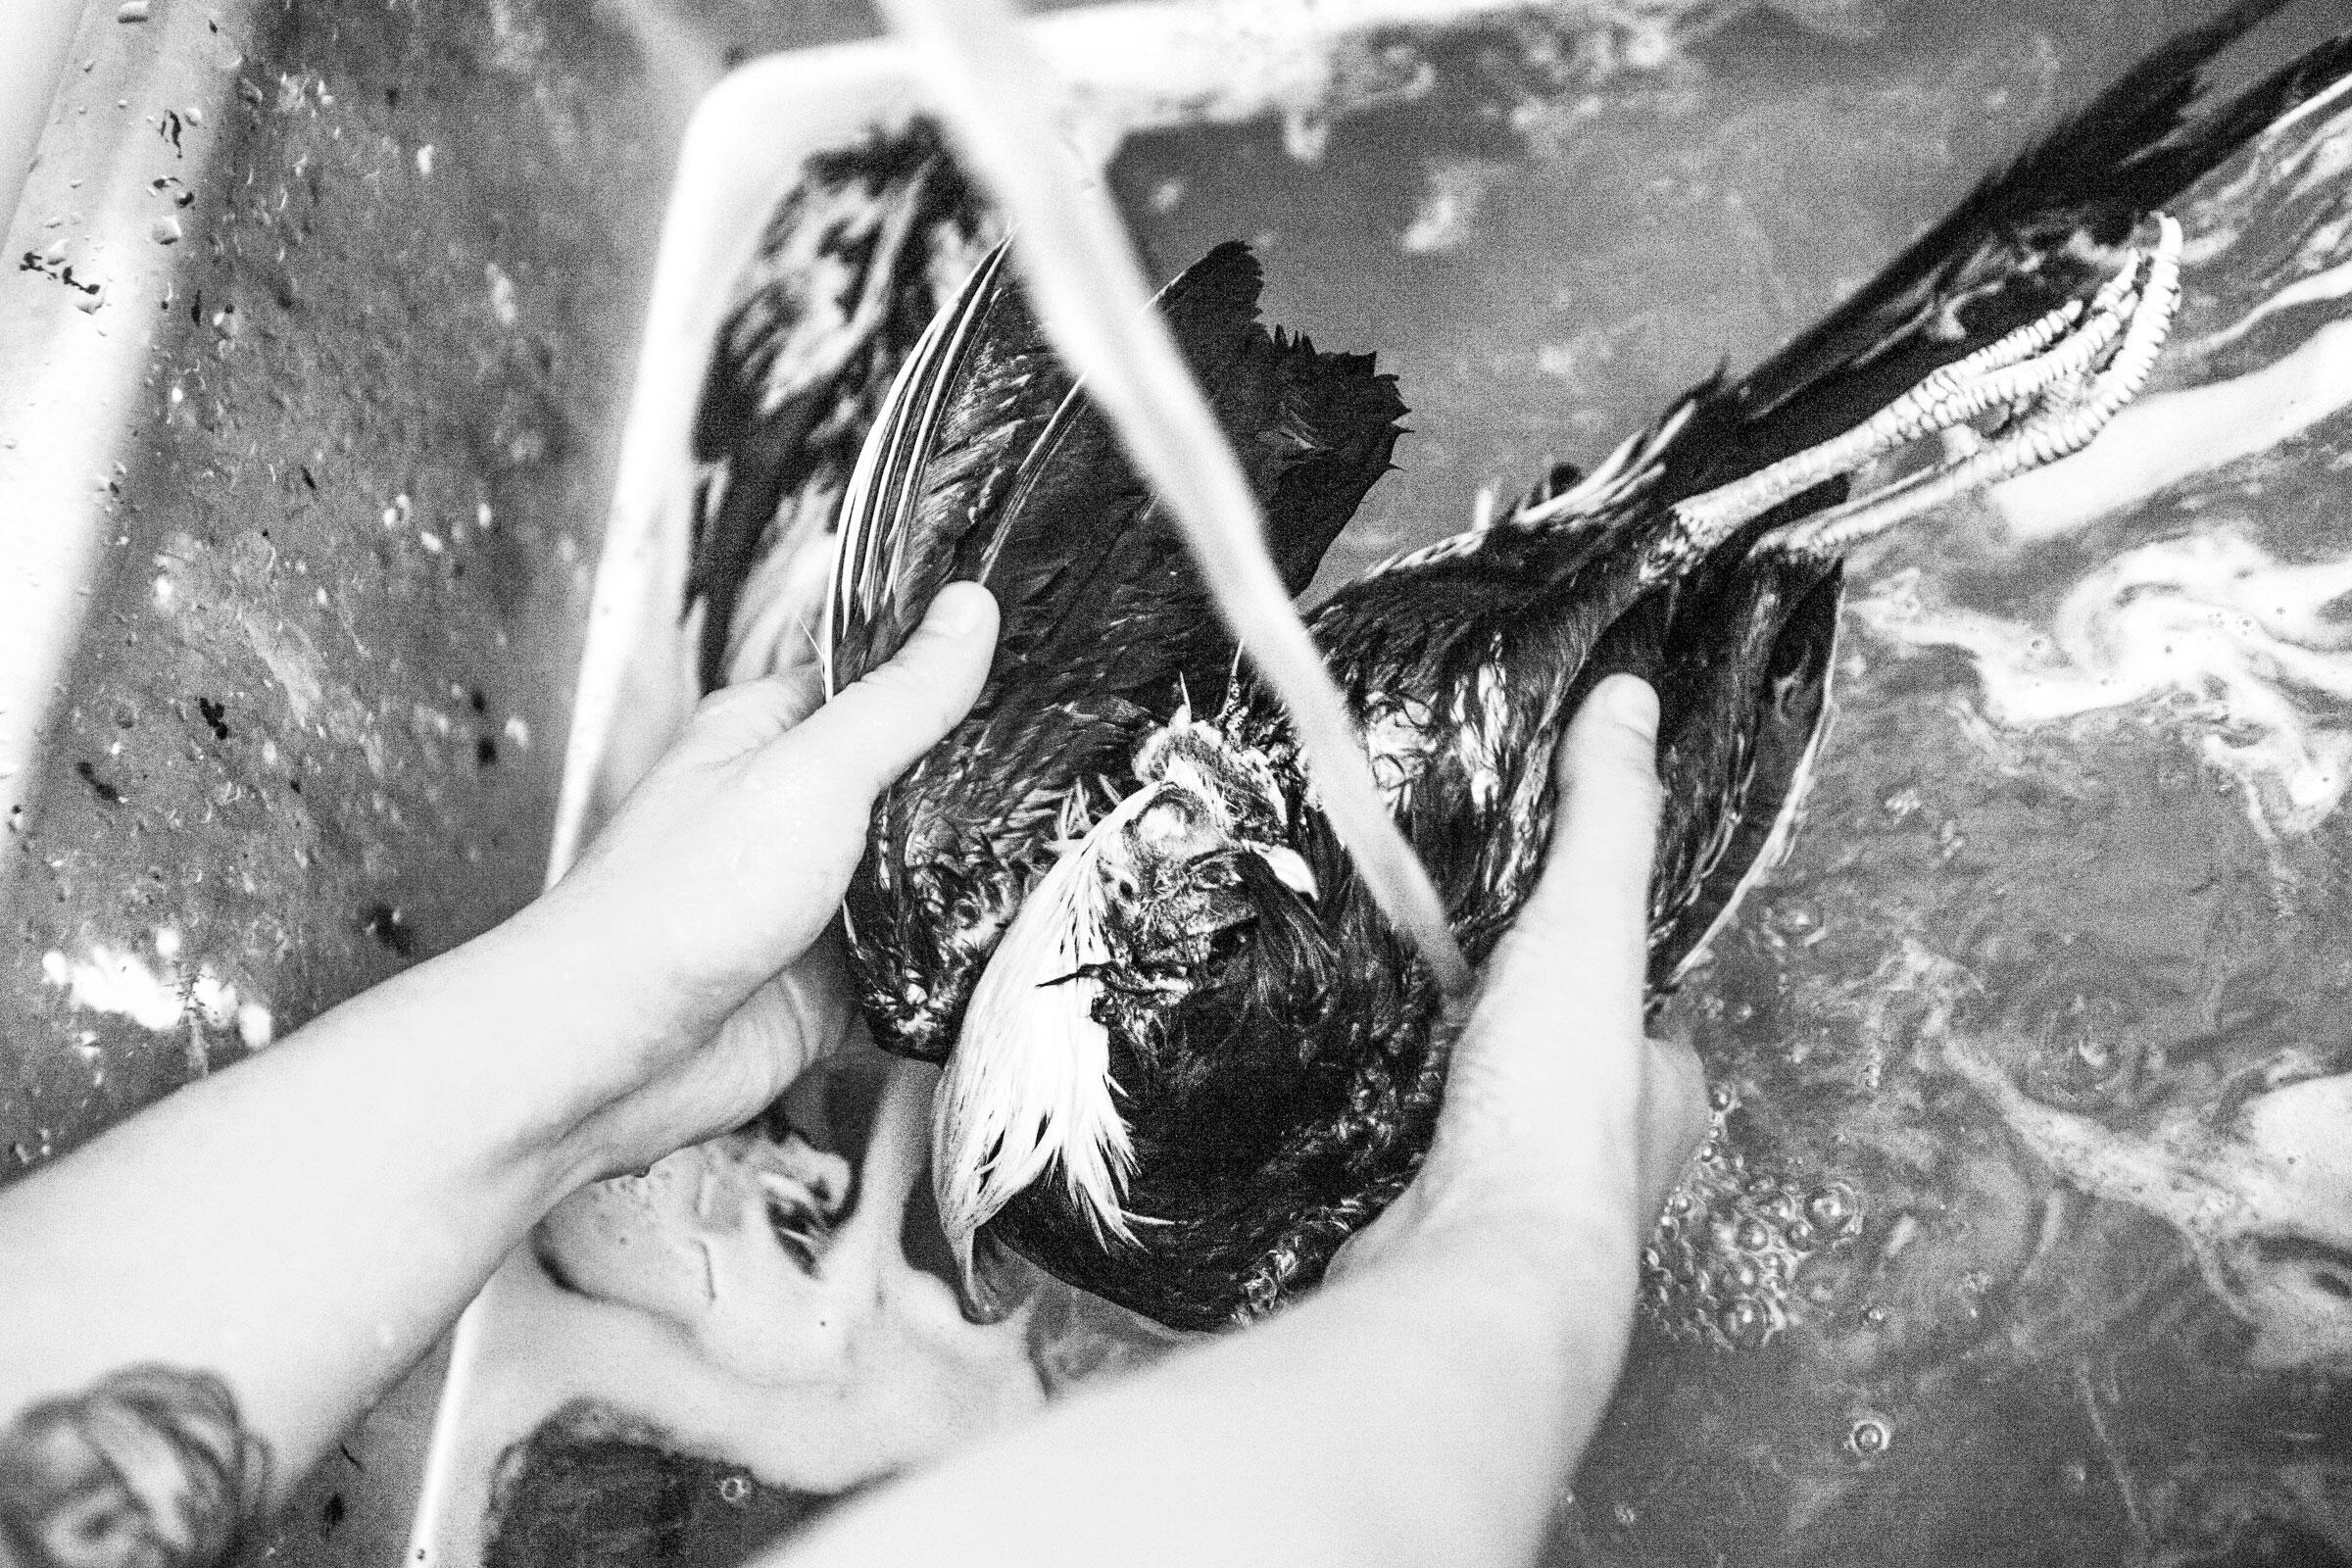 Katie rinses a Bantam rooster's stiff carcass under warm water in a utility sink at the Morbid Anatomy Museum in Brooklyn, New York. Camilla Cerea/Audubon